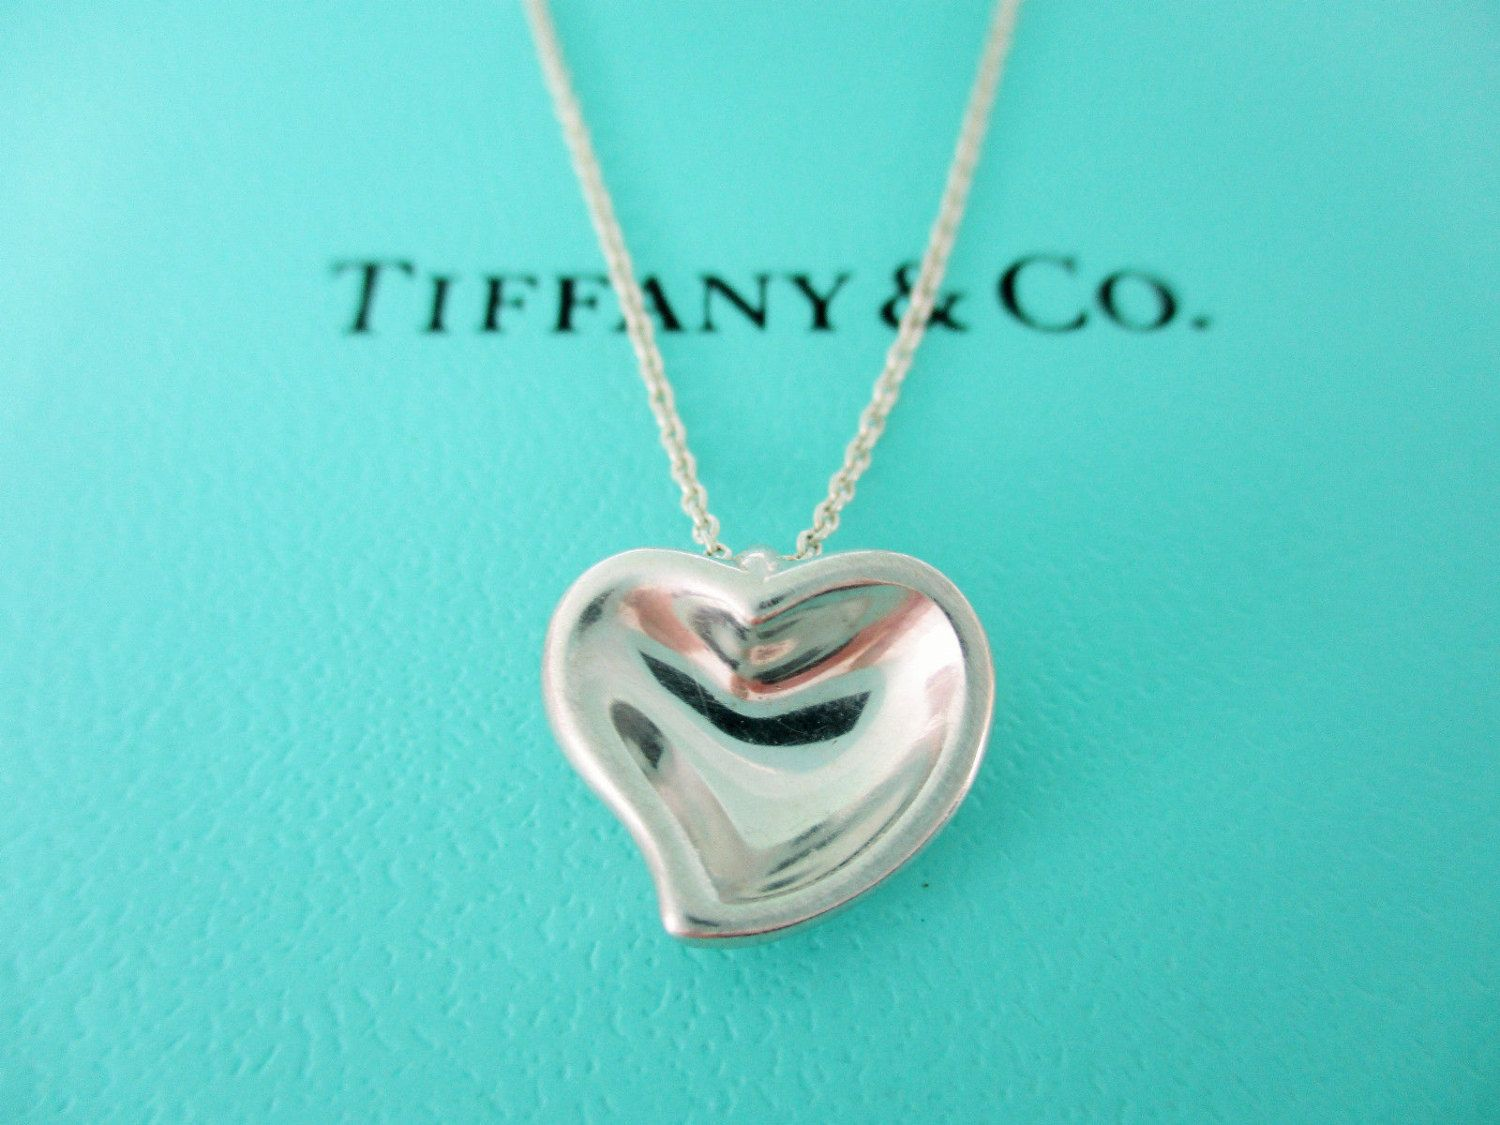 55450c14c Lovely Tiffany & Co. Sterling Silver Small Curved Full Heart Designed by  Elsa Peretti and comes from Spain by Tiffanytreasureshop on Etsy